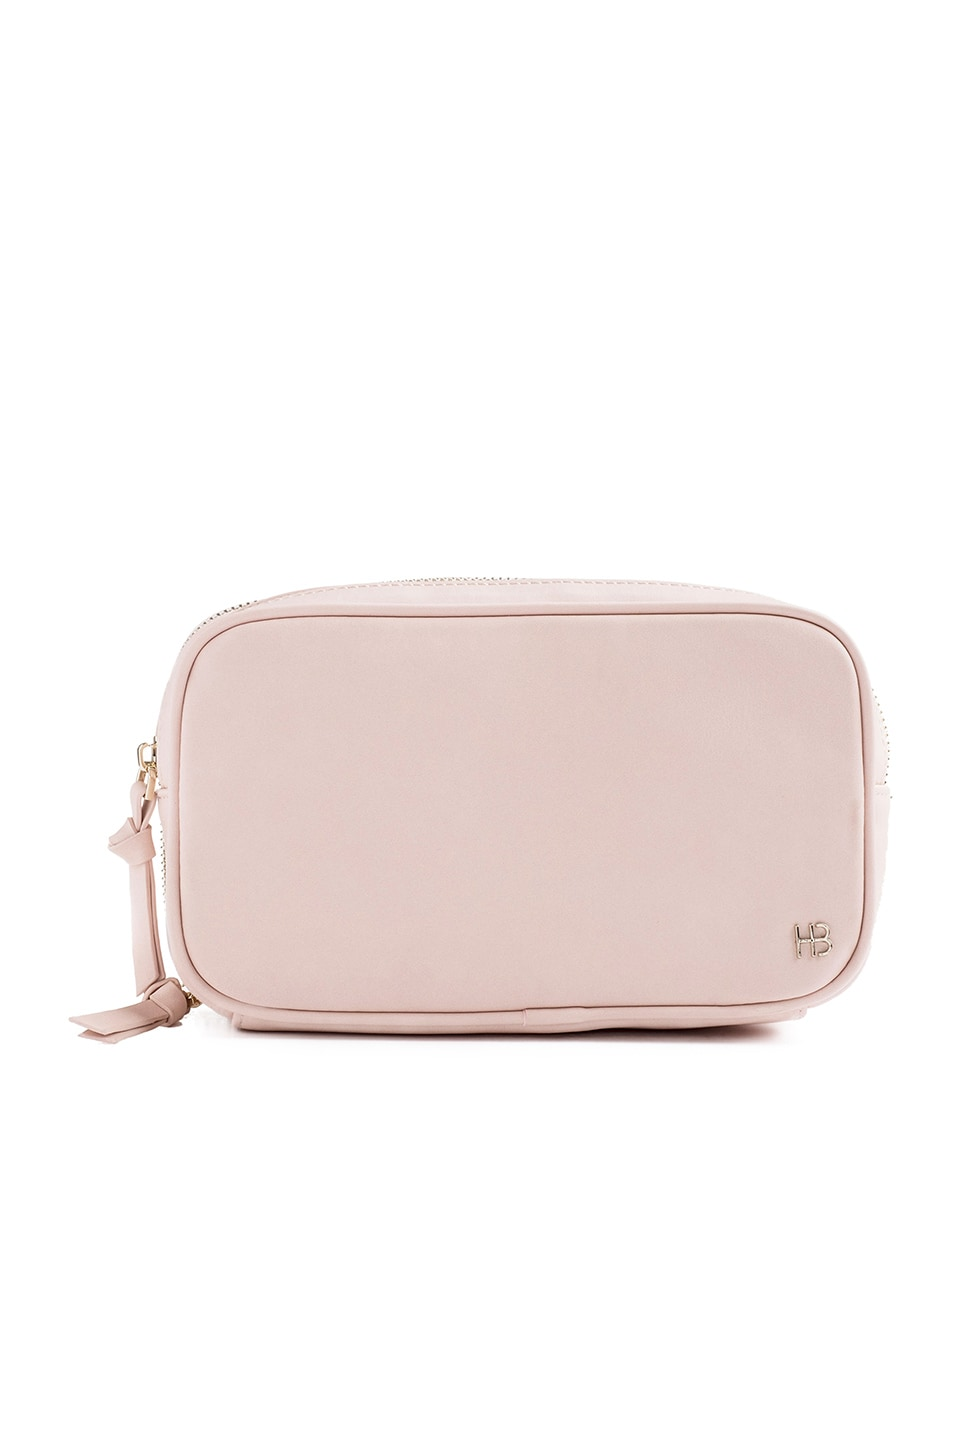 Grotta Latitude Beauty Bag